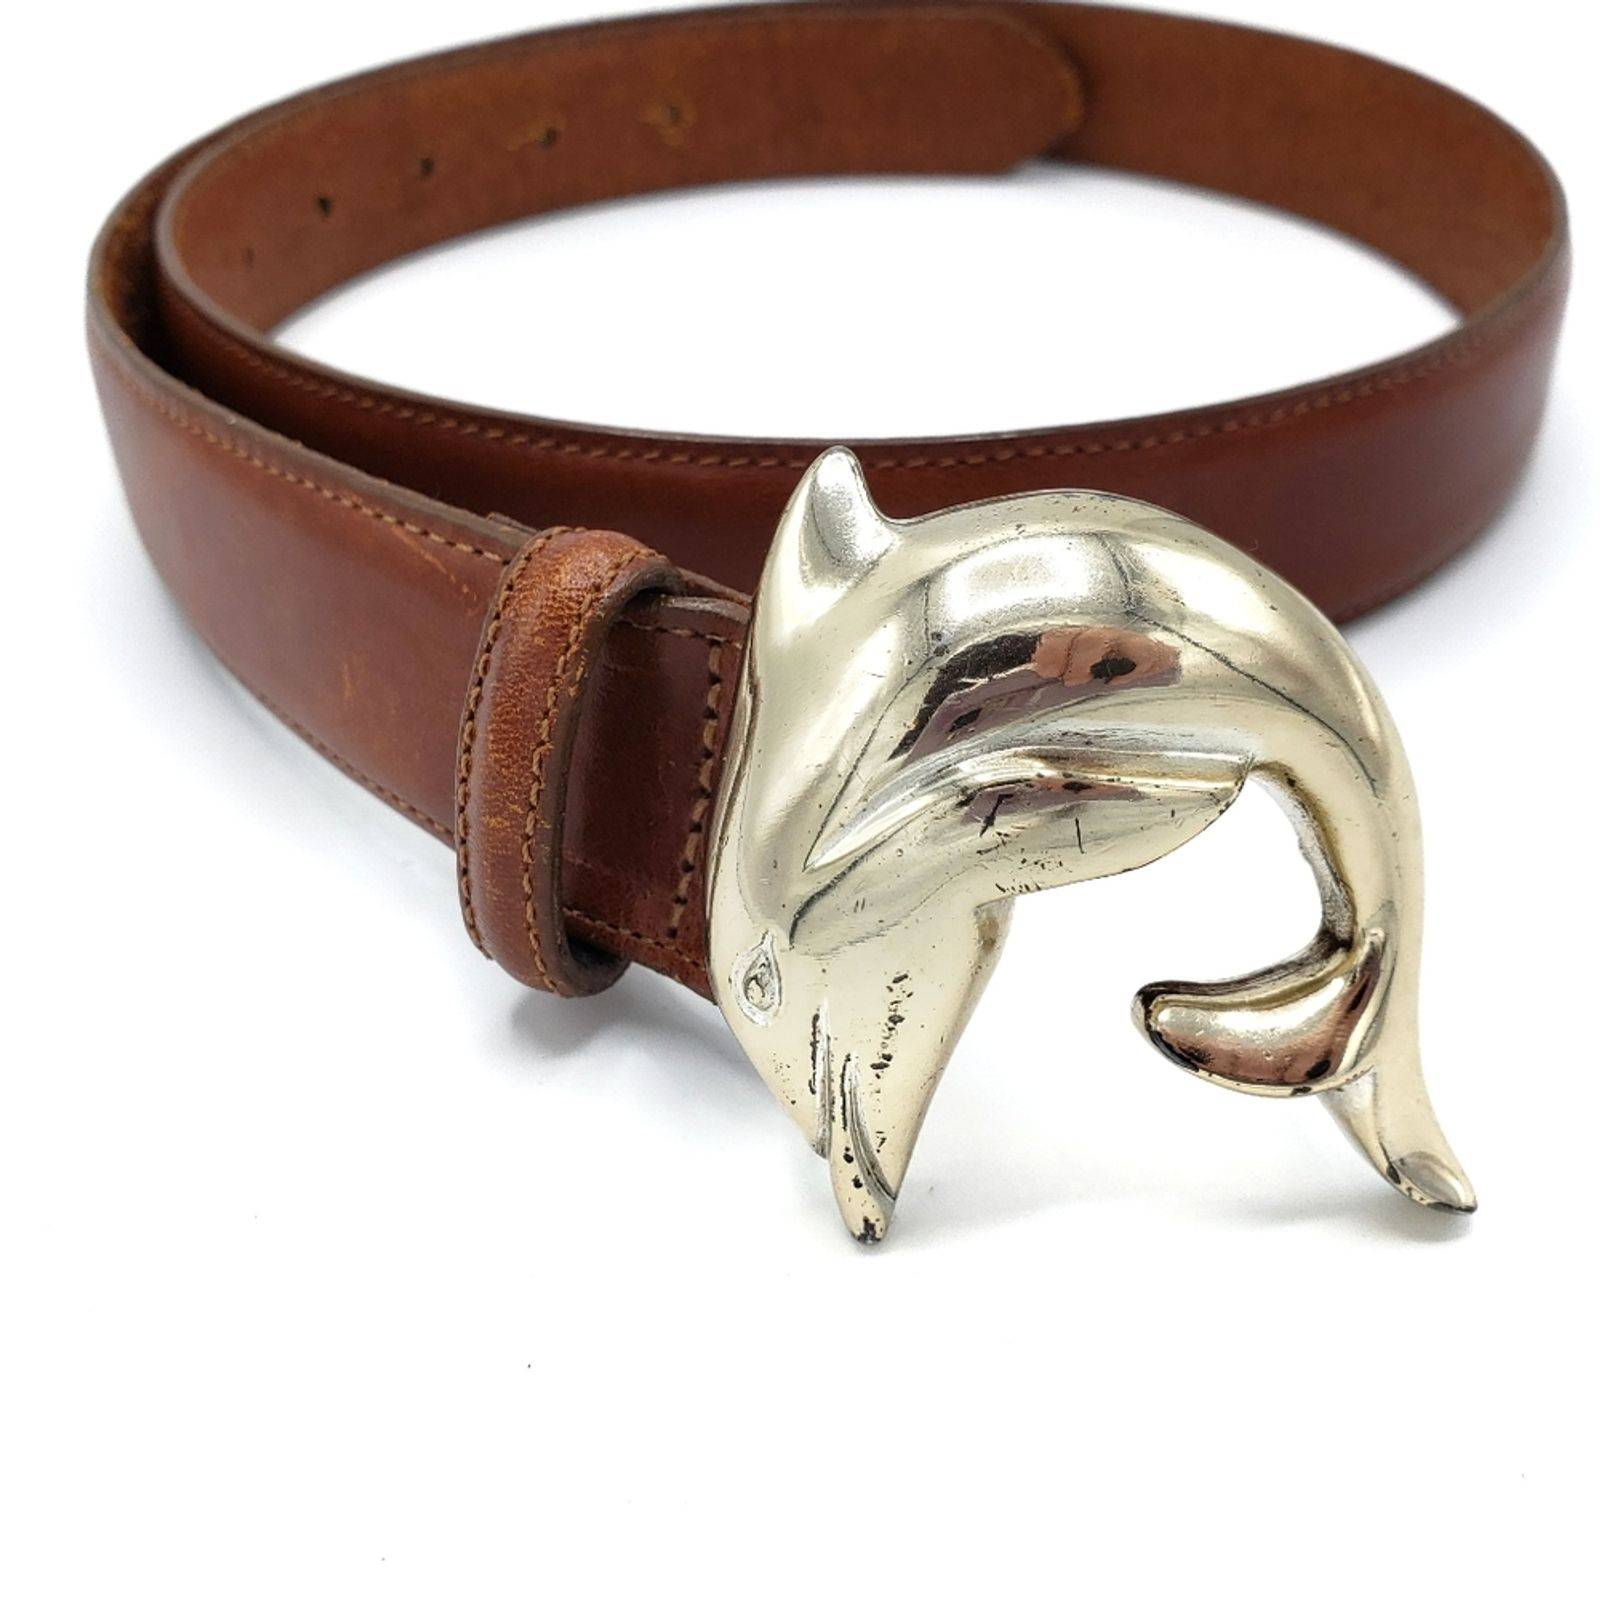 Talbots Dolphin Brown Leather Belt